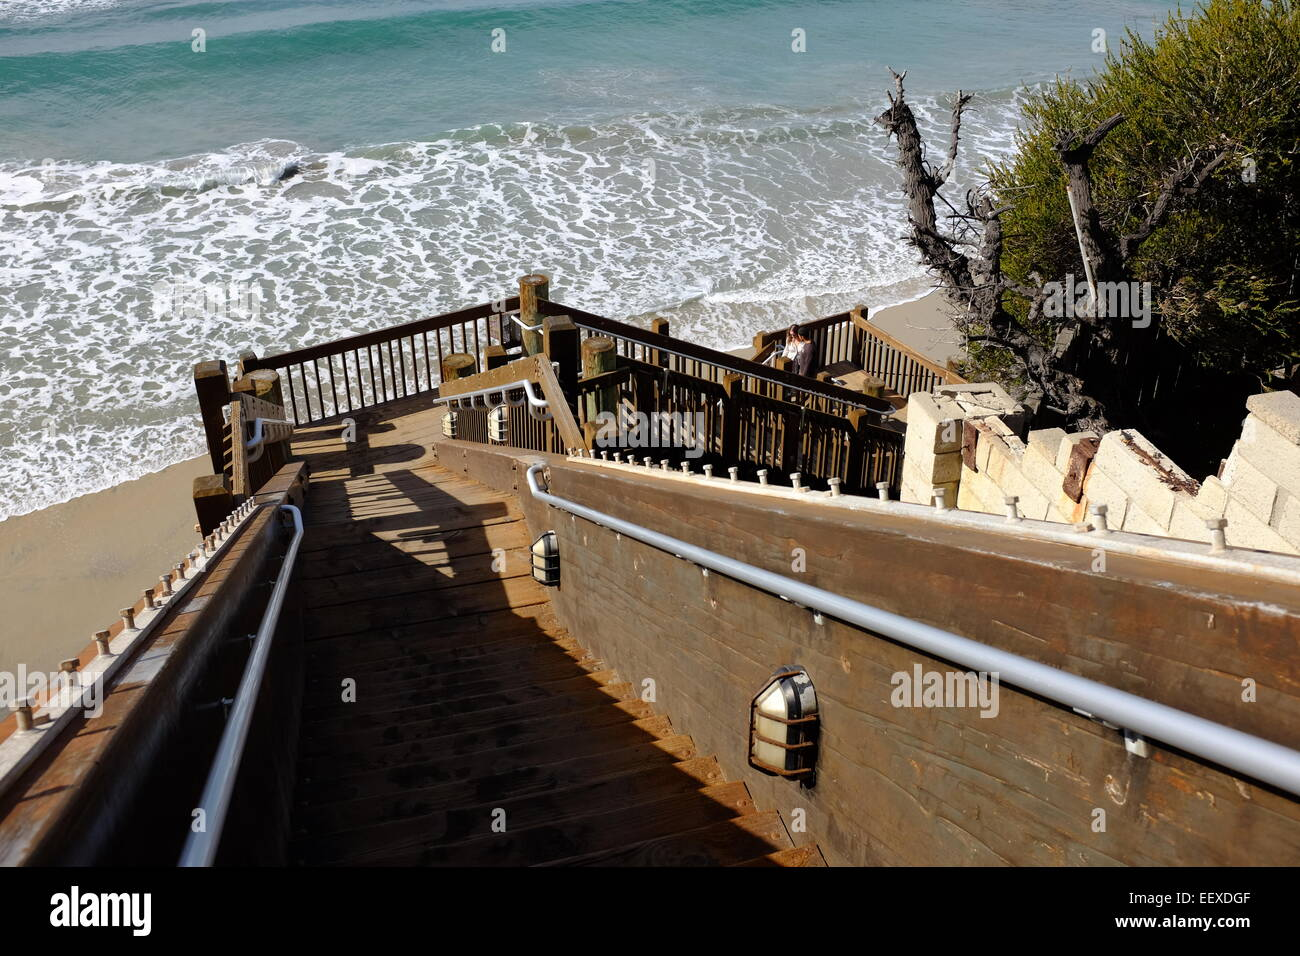 Stairs And Surfing At The Grandview Beach Access In Encinitas, CA